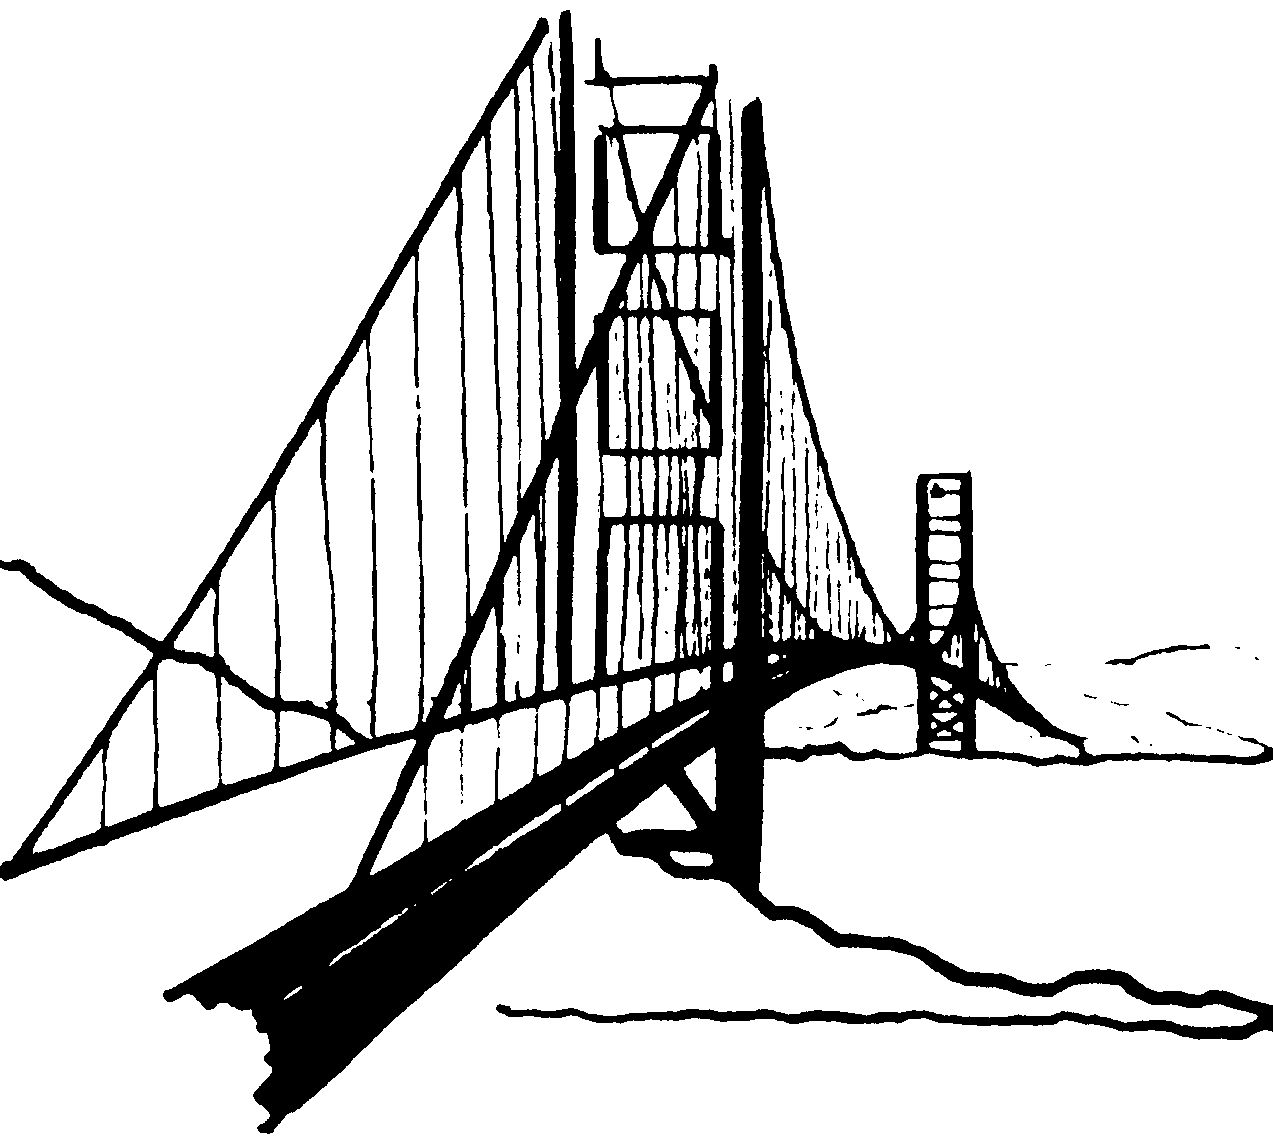 Brooklyn bridge only clip art at clker com vector clip art.